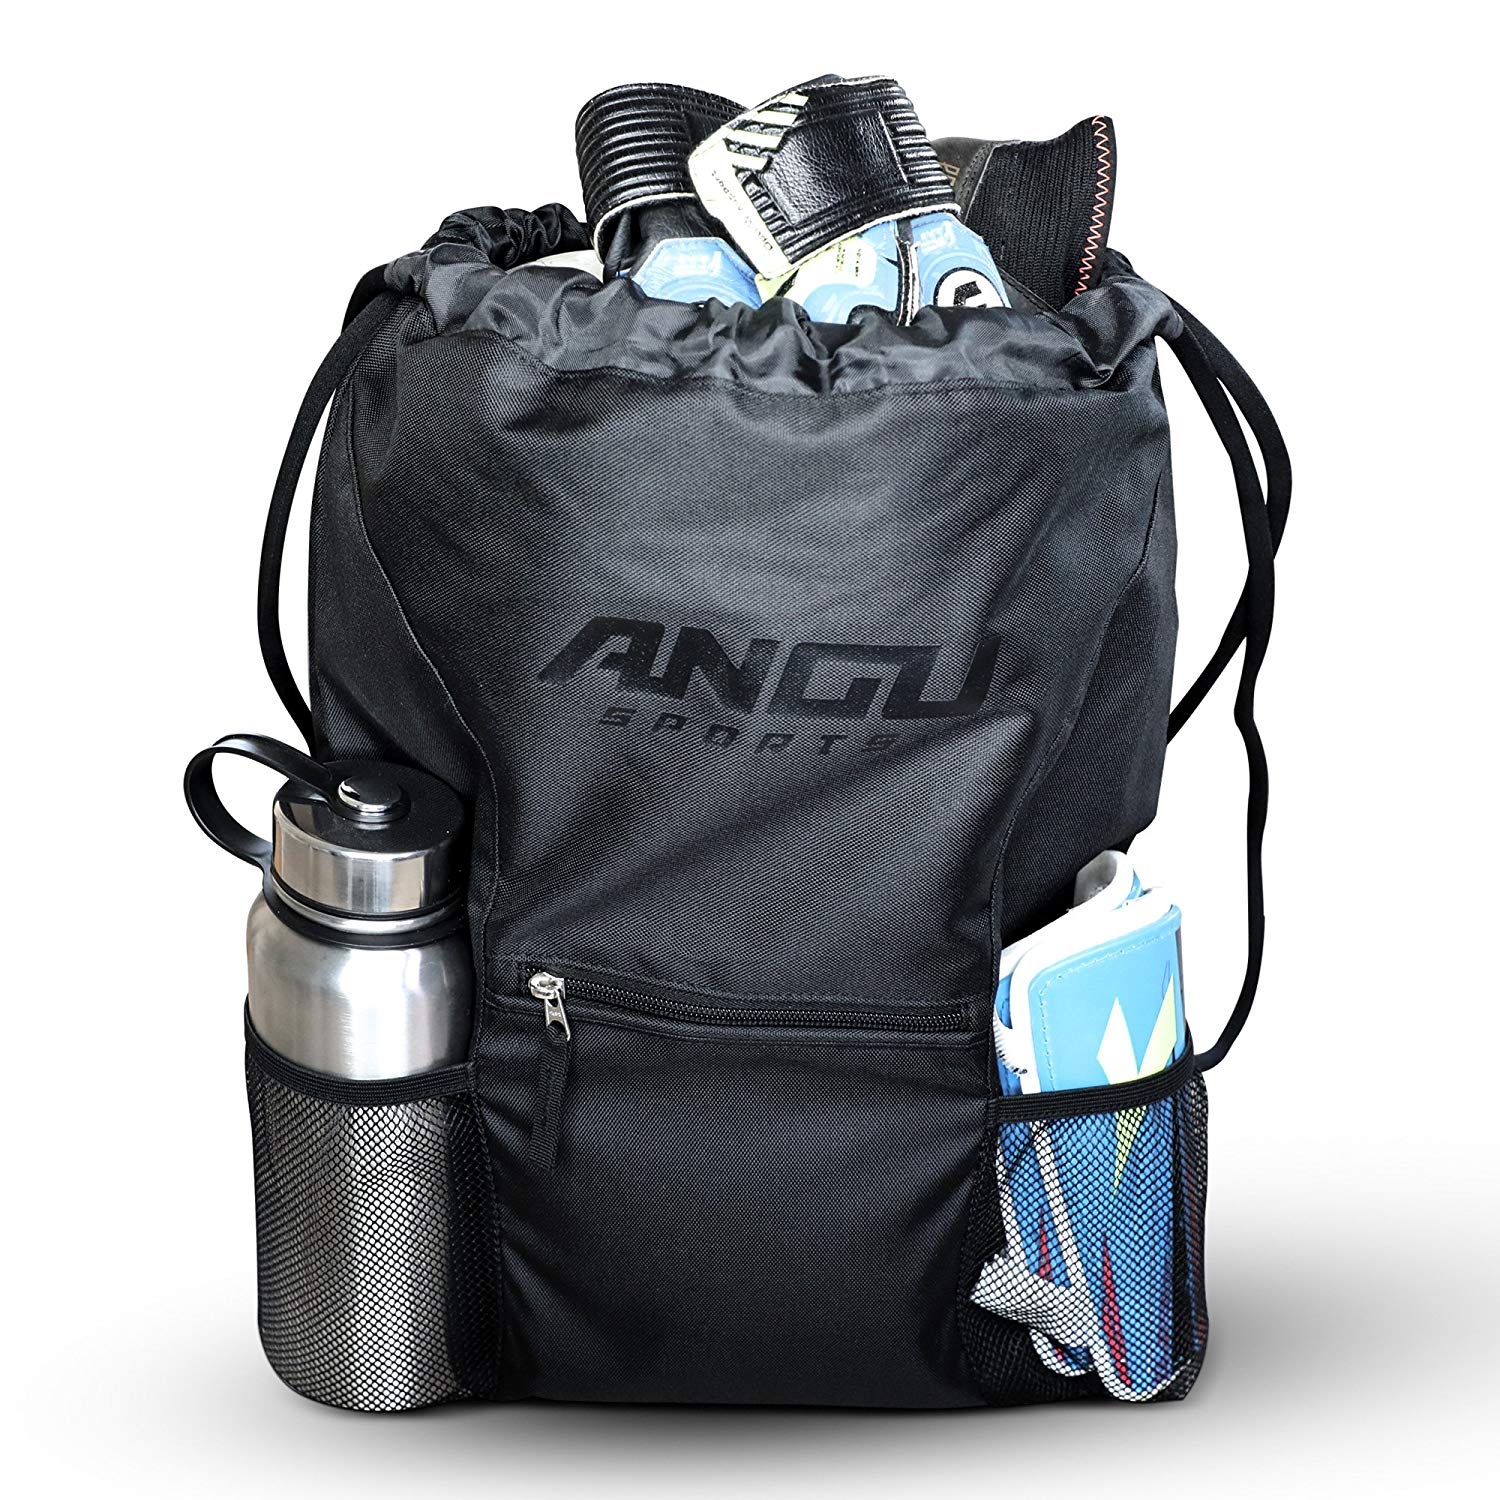 Angu Sports Soccer Bag For Youth Kids S Boys Men Women